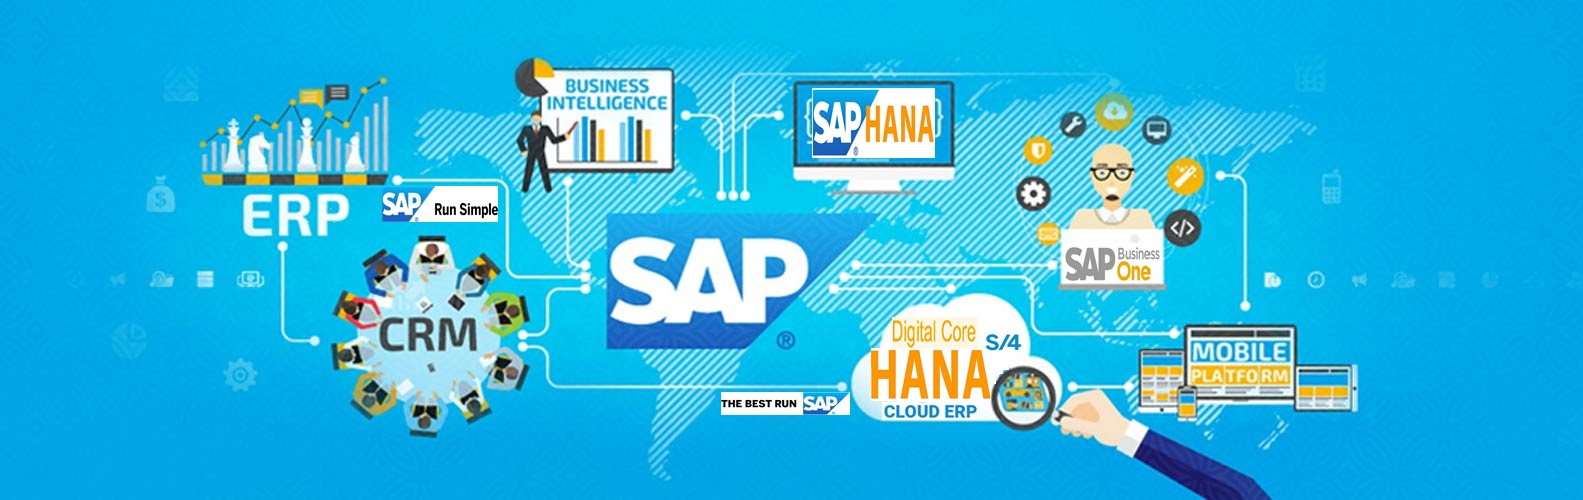 Indo Asia Global Technologies ERP Solutions offer SAP HANA, SAP S/4 HANA, SAP Business One